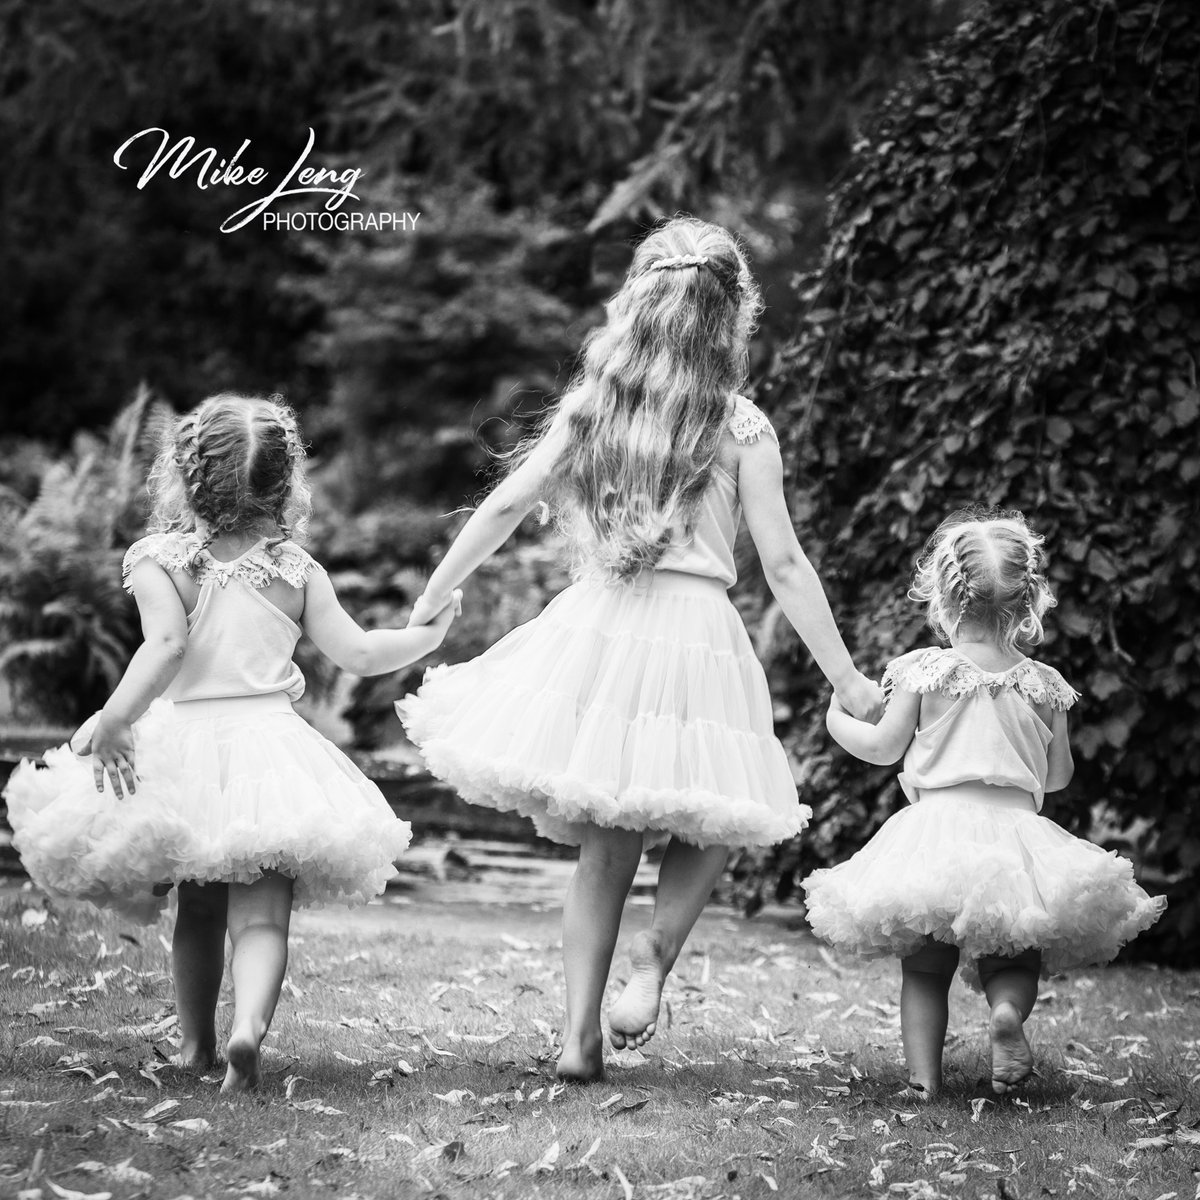 THE QUALITY OF INNOCENCE A Children's Portrait Session plus a Framed Photograph for just £55 Message us to book your Children's Portrait . https://soo.nr/r3kc  #mikelengphotography #emmahull80 #wentworthgardencentre #childhoodunplugged   #magicofchildhood pic.twitter.com/KgrN2tAw0v